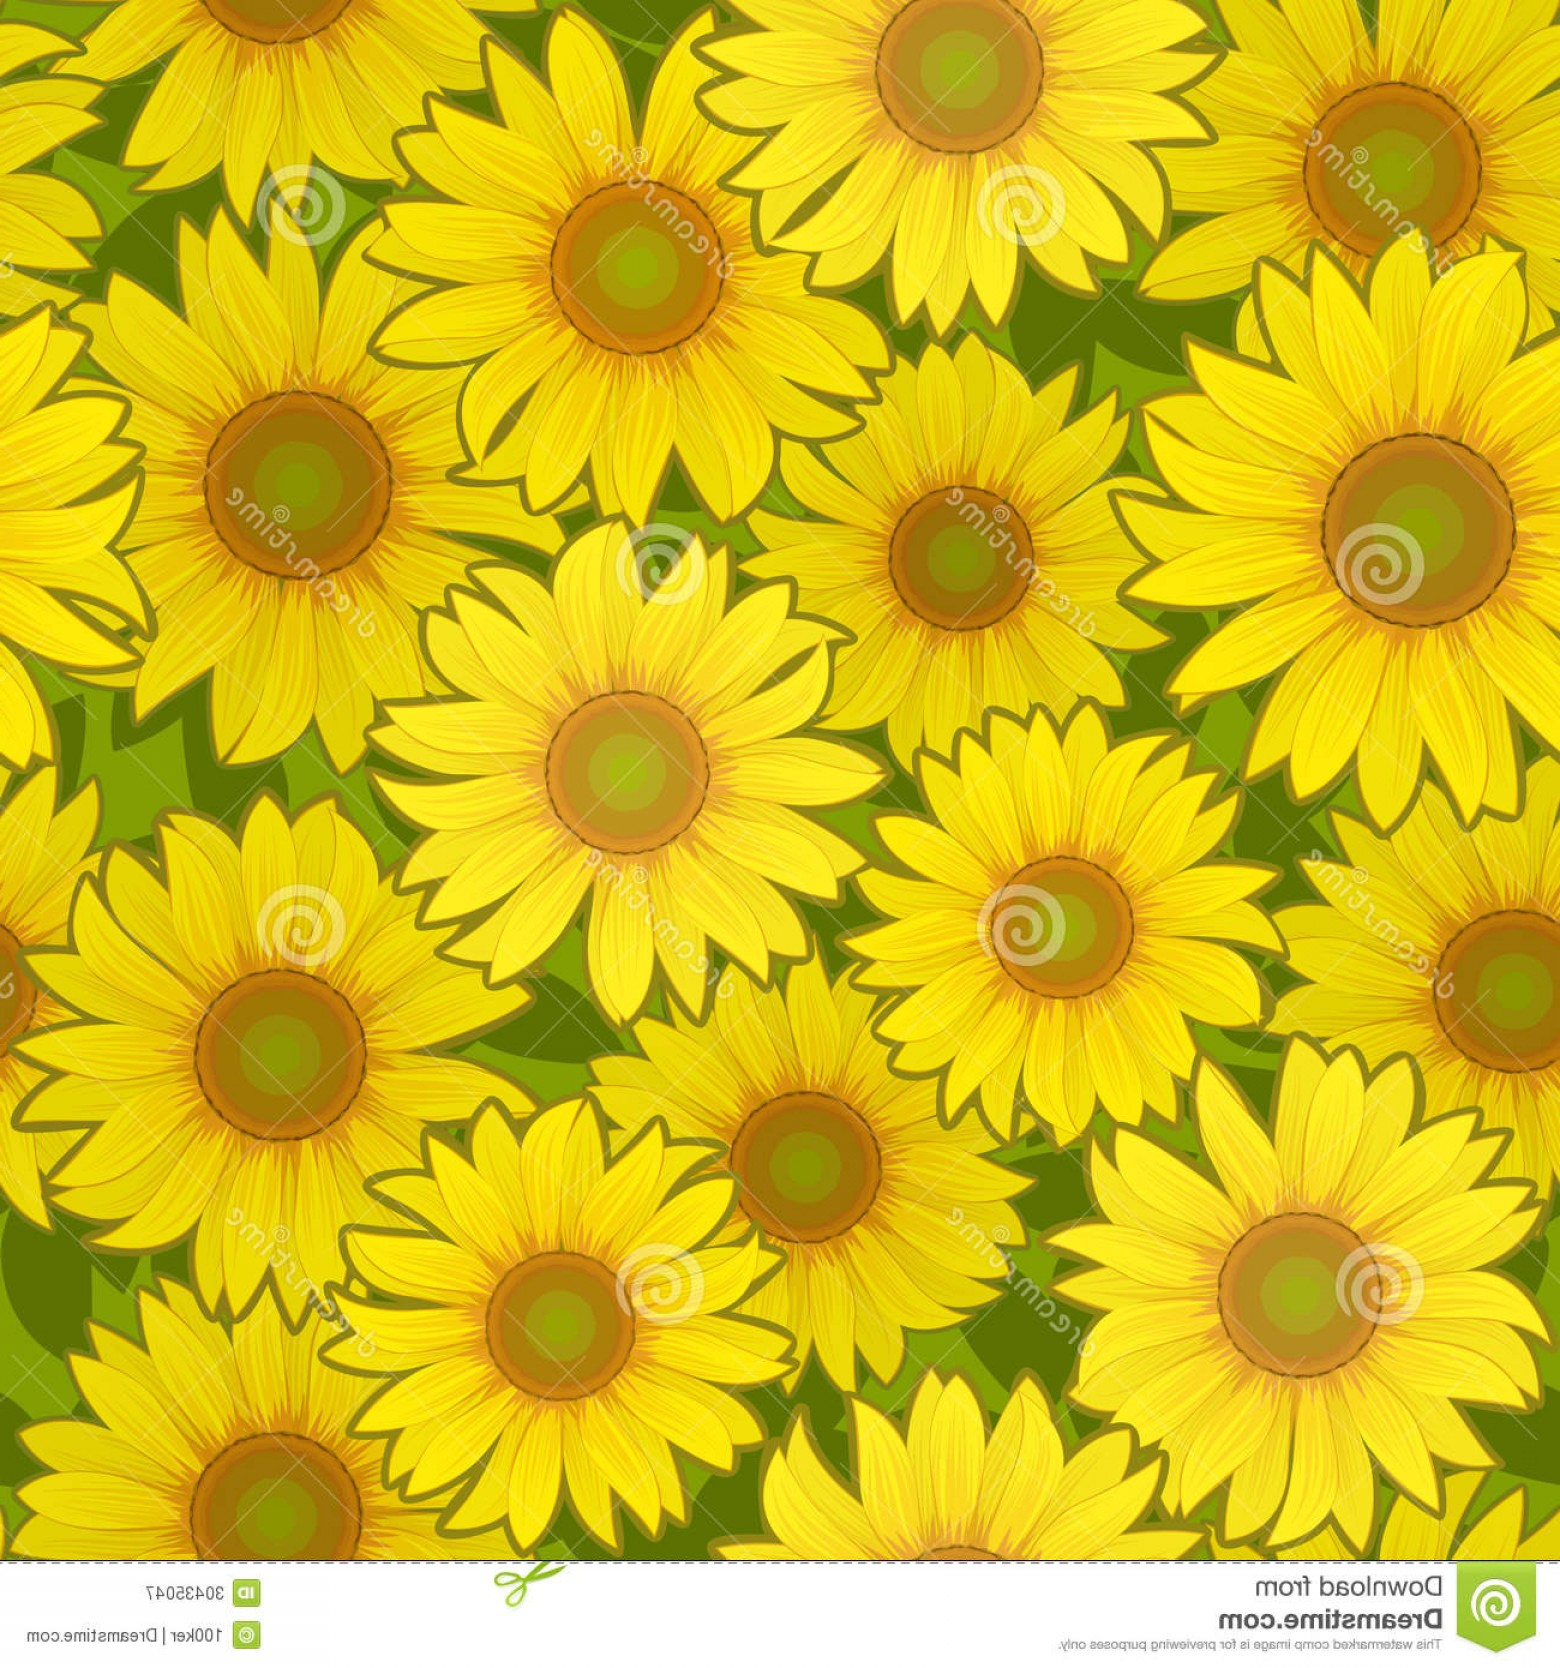 Sunflower Vector Pattern: Royalty Free Stock Photography Sunflower Flower Seamless Background Vector Yellow Pattern Image